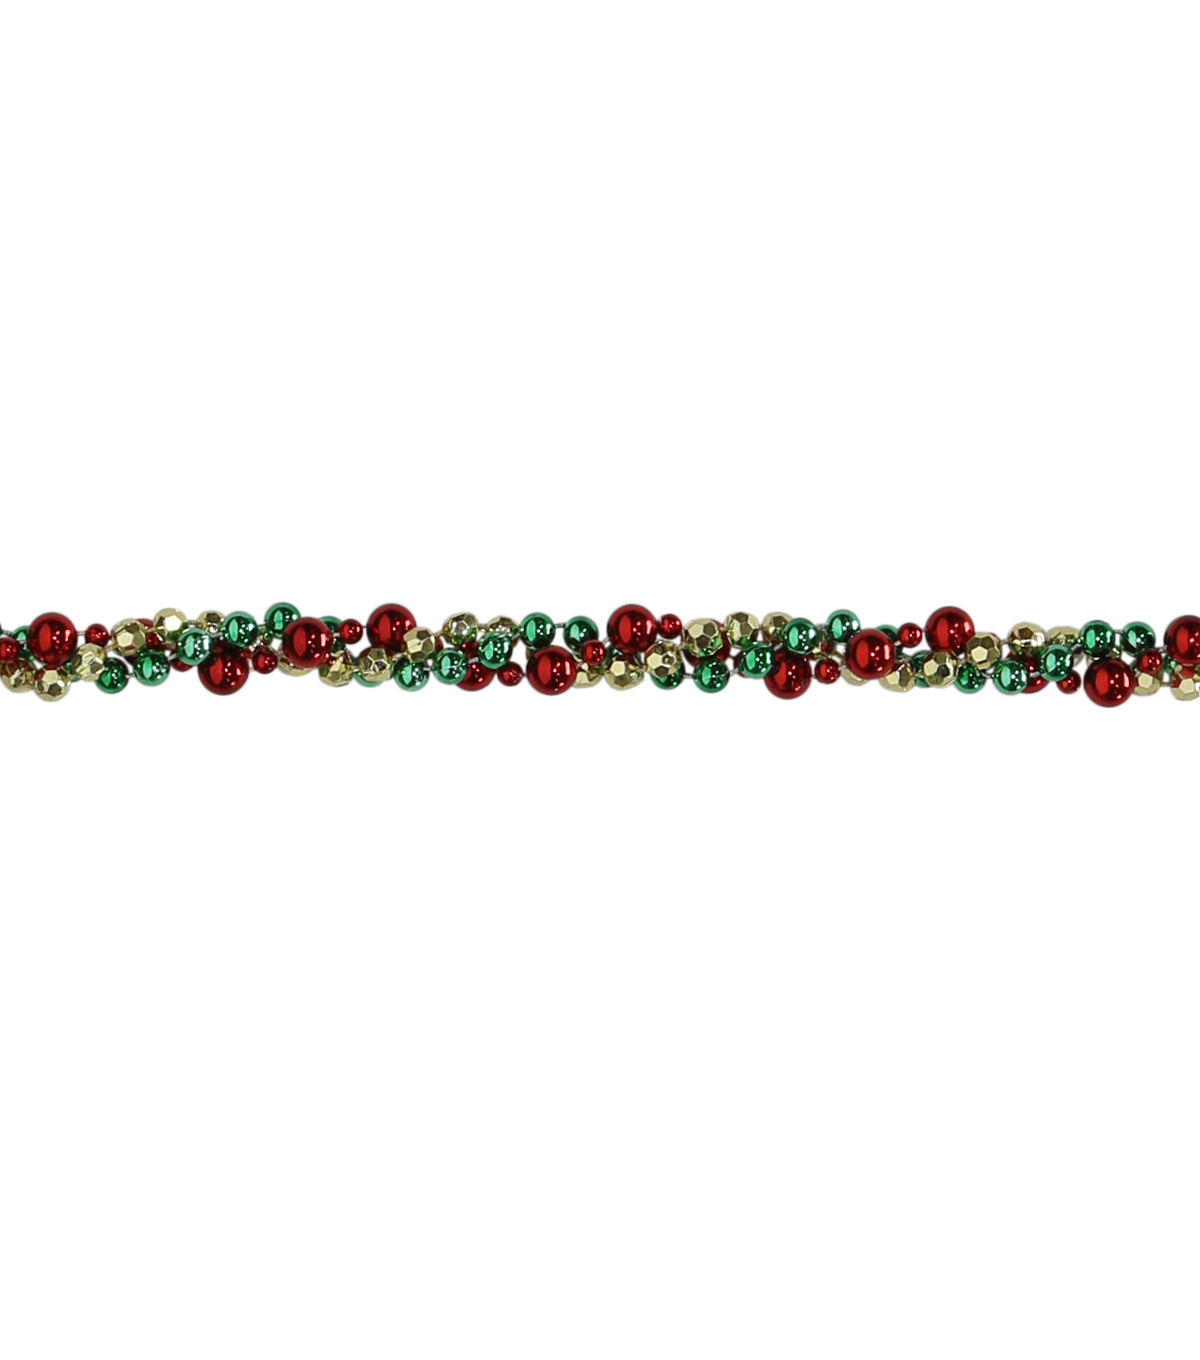 Maker's Holiday Twisted Bead Garland-Gold, Green & Red